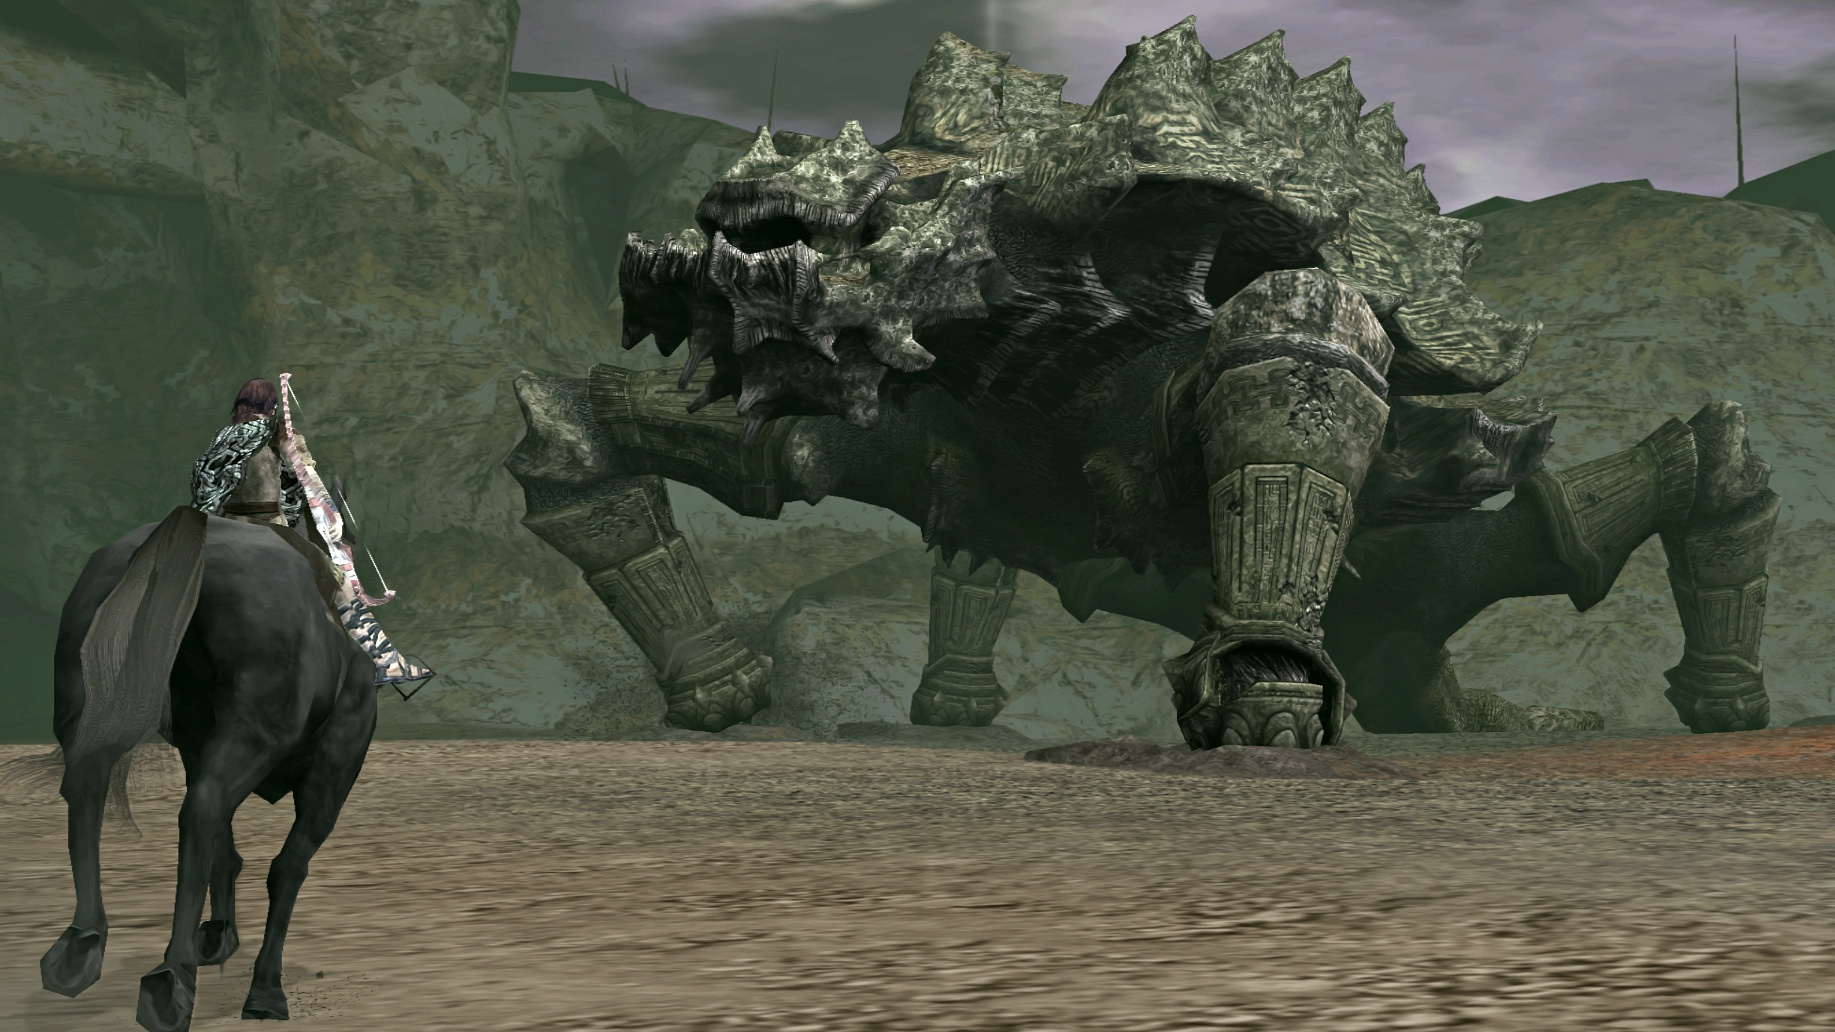 Shadow Of The Colossus SOTC Wallpaper Basaran Storm